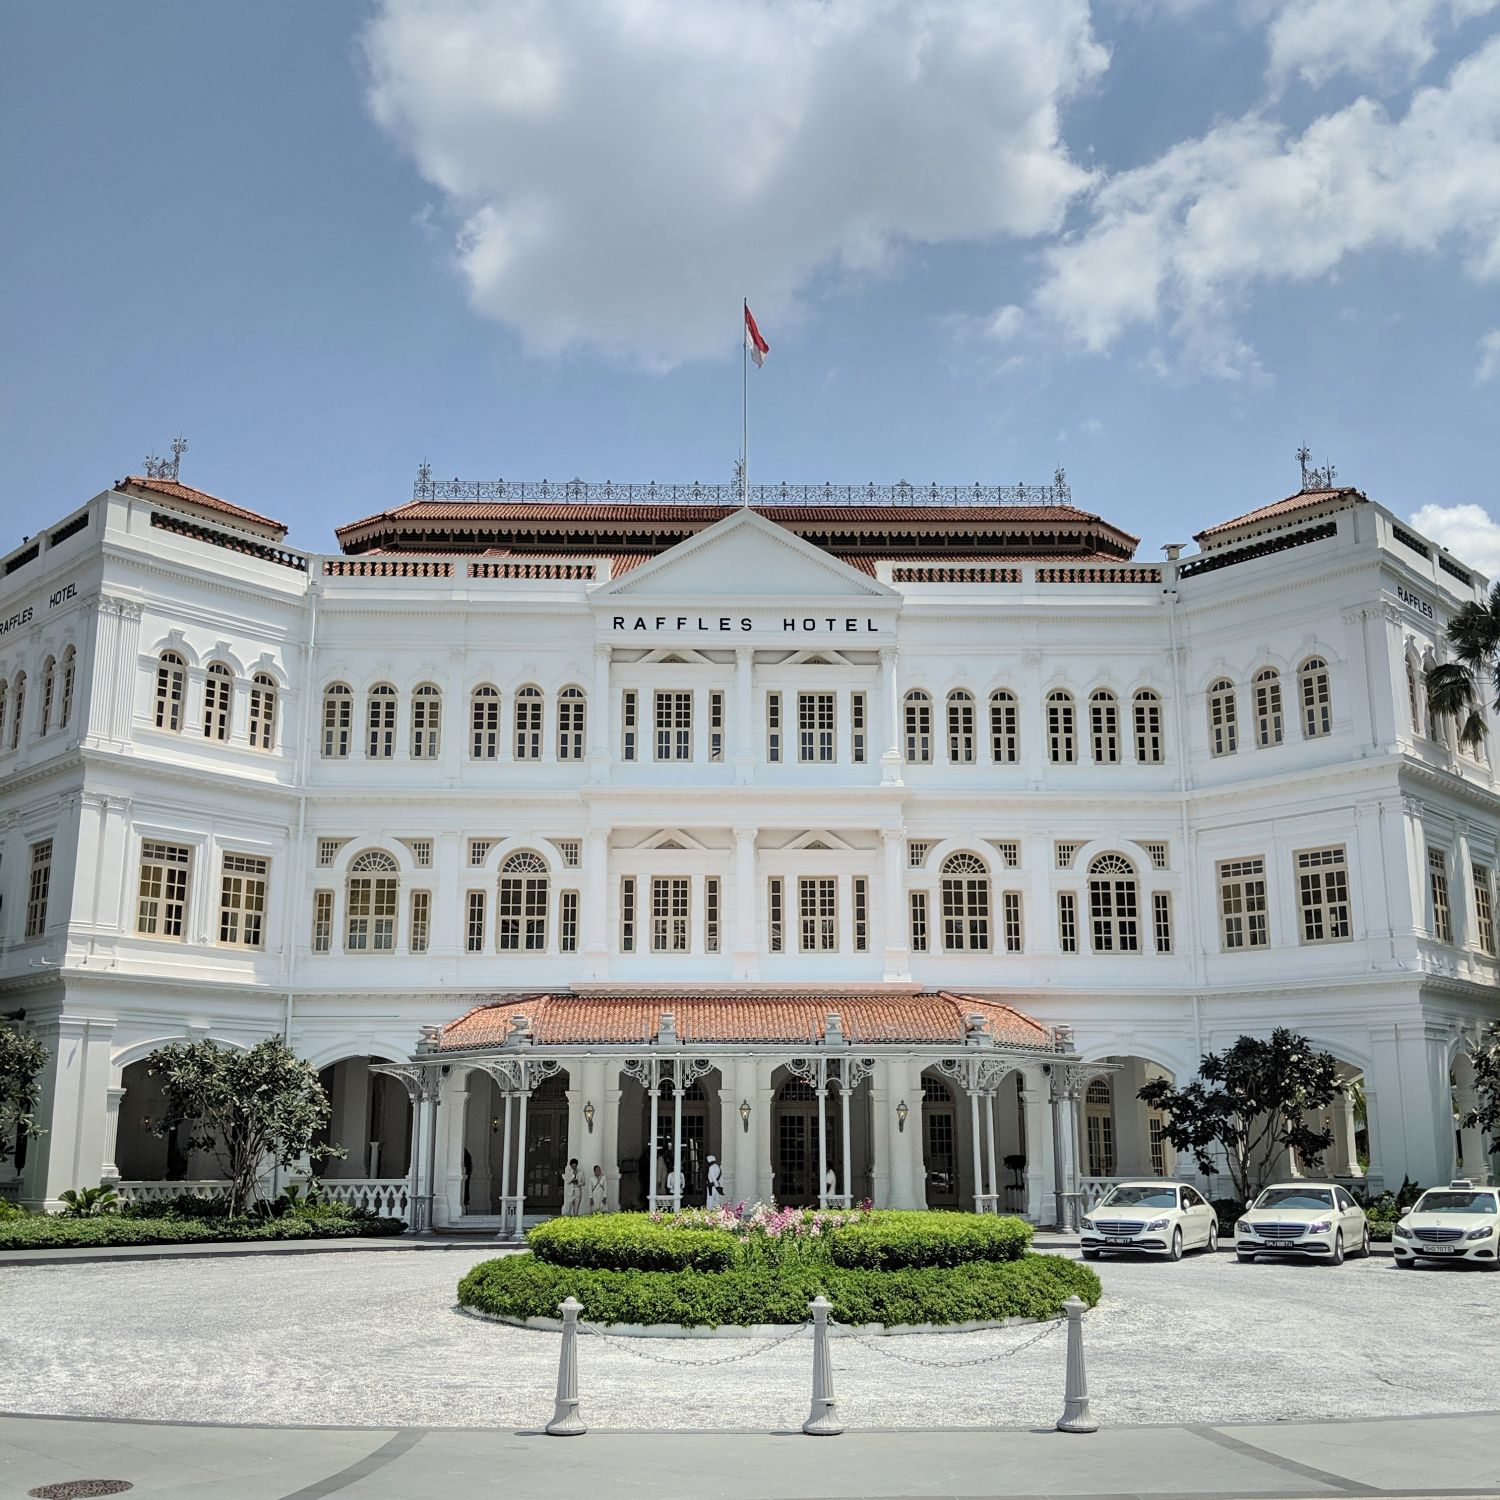 Hotel Review: Raffles Hotel Singapore (Palm Court Suite) - Glossy Revival  of the Grand Old Dame